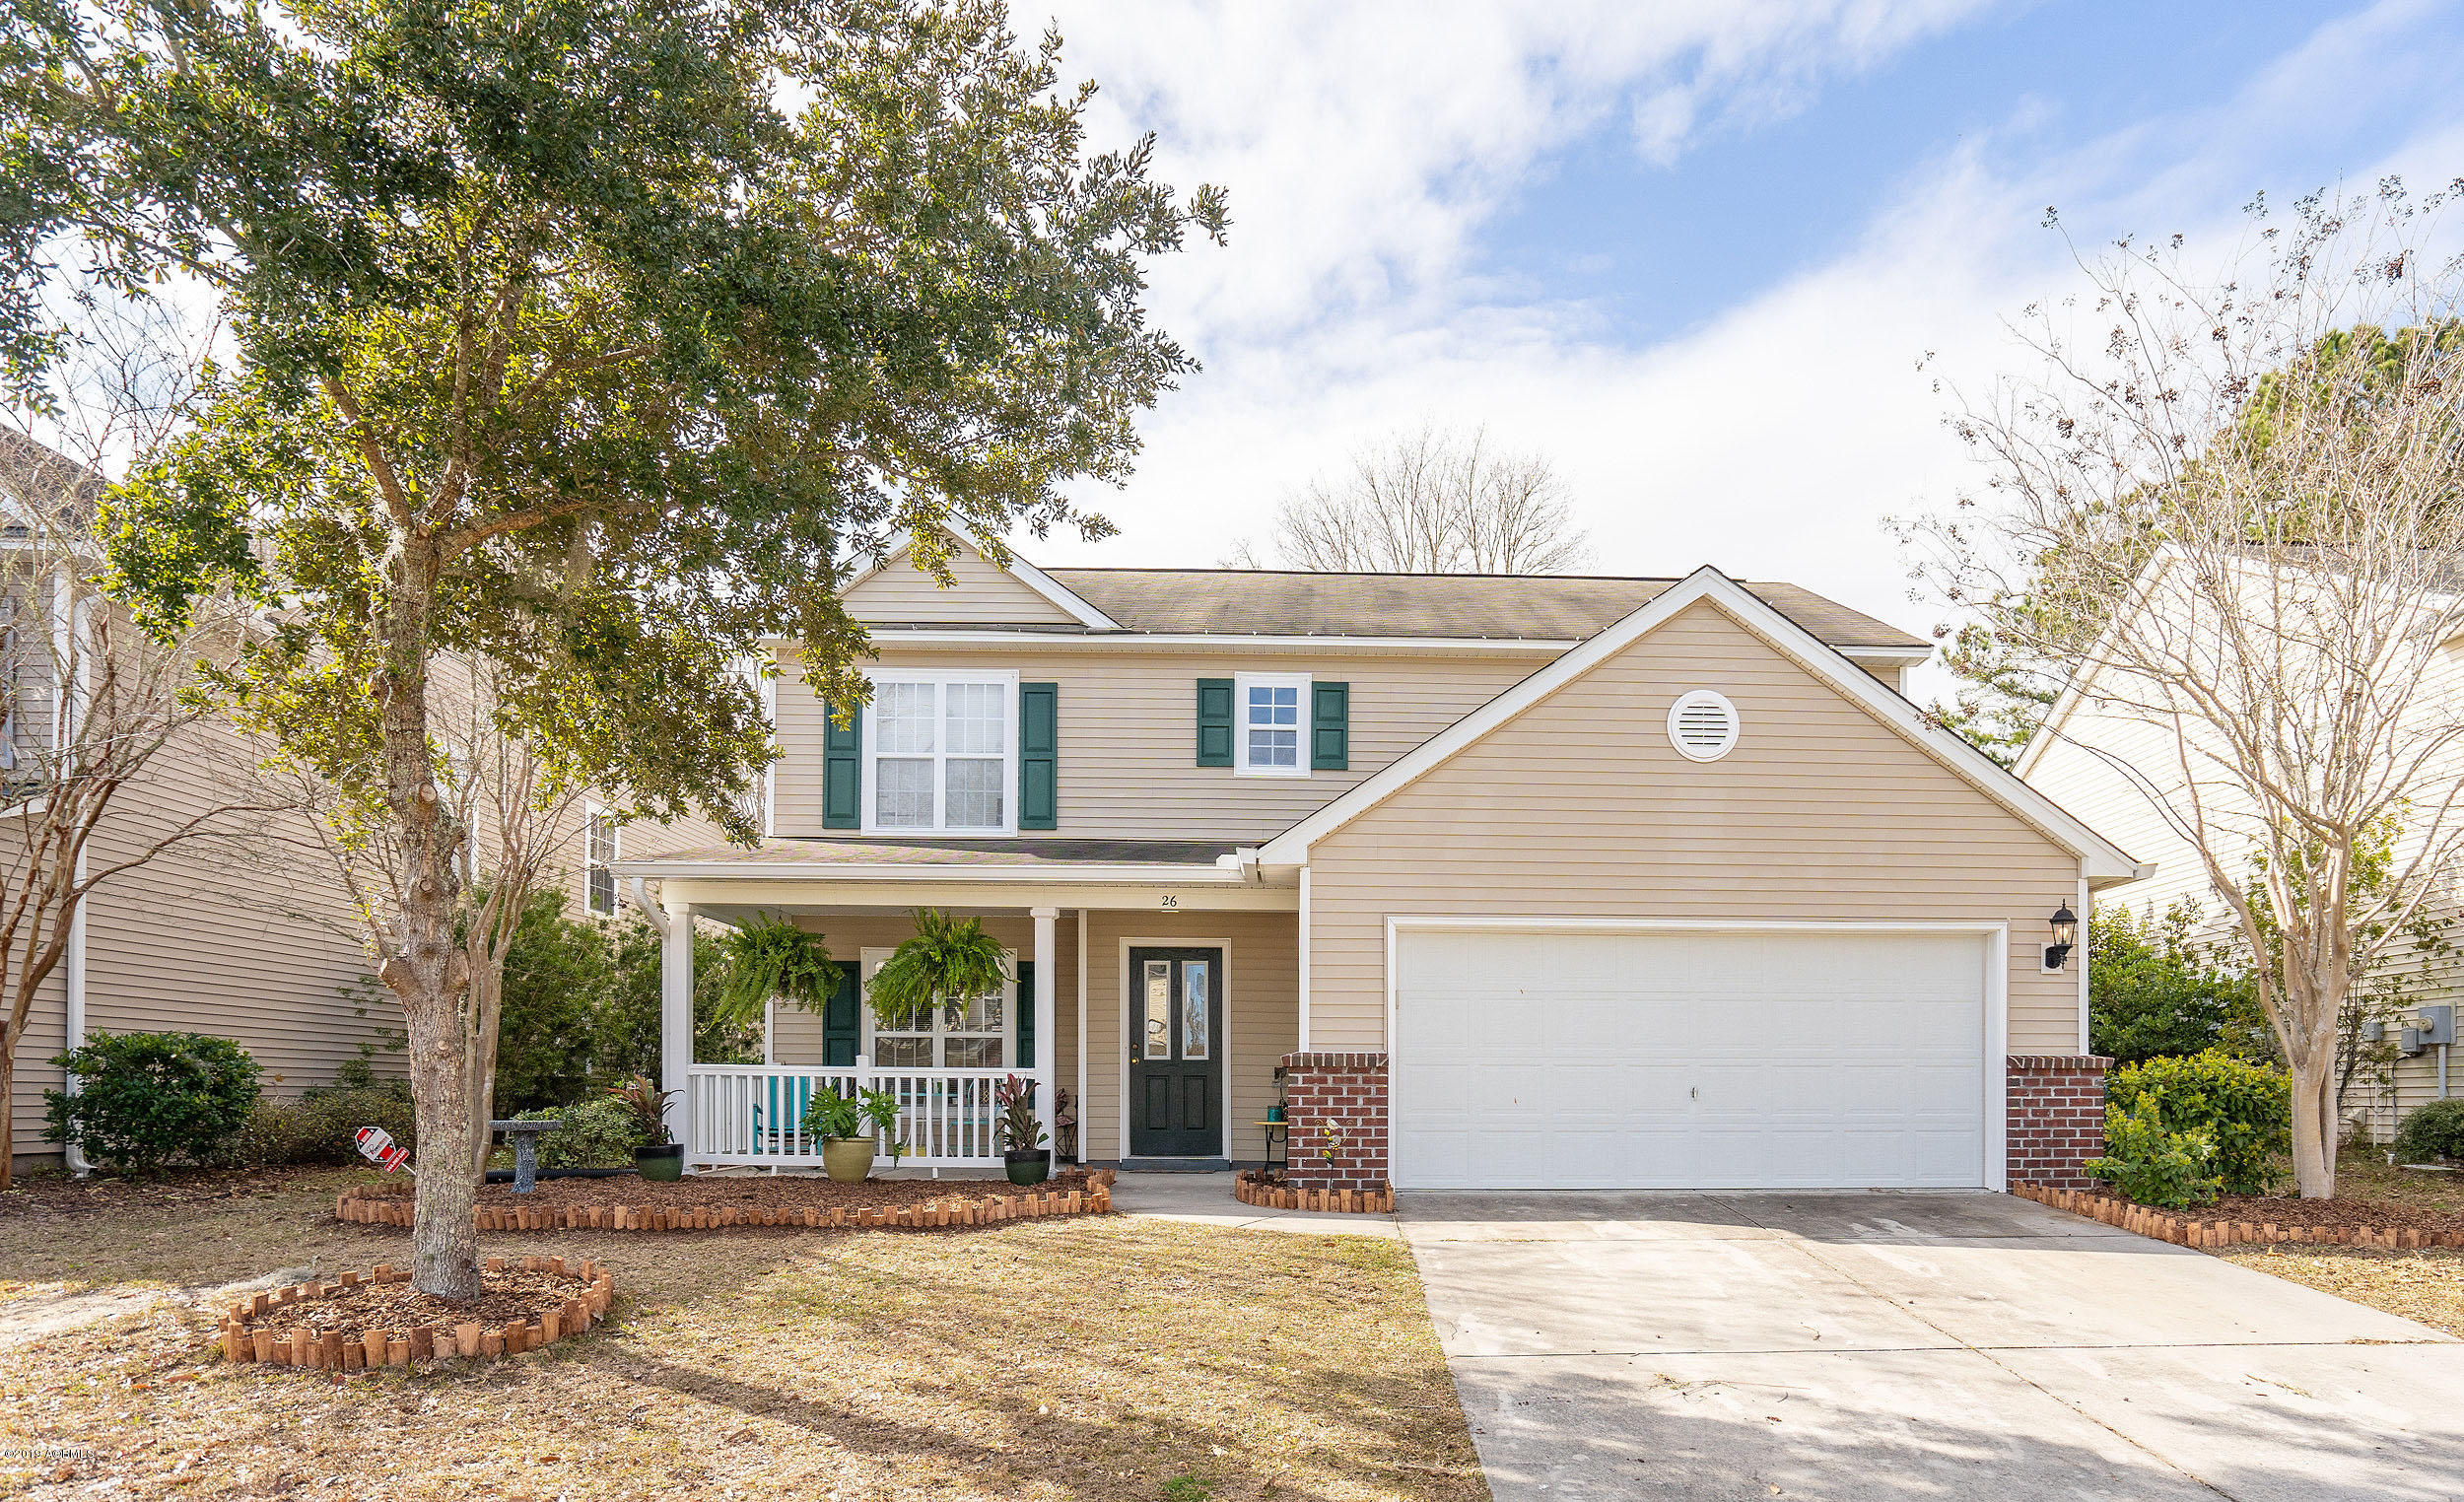 Photo of 26 Pennyroyal Way, Beaufort, SC 29906